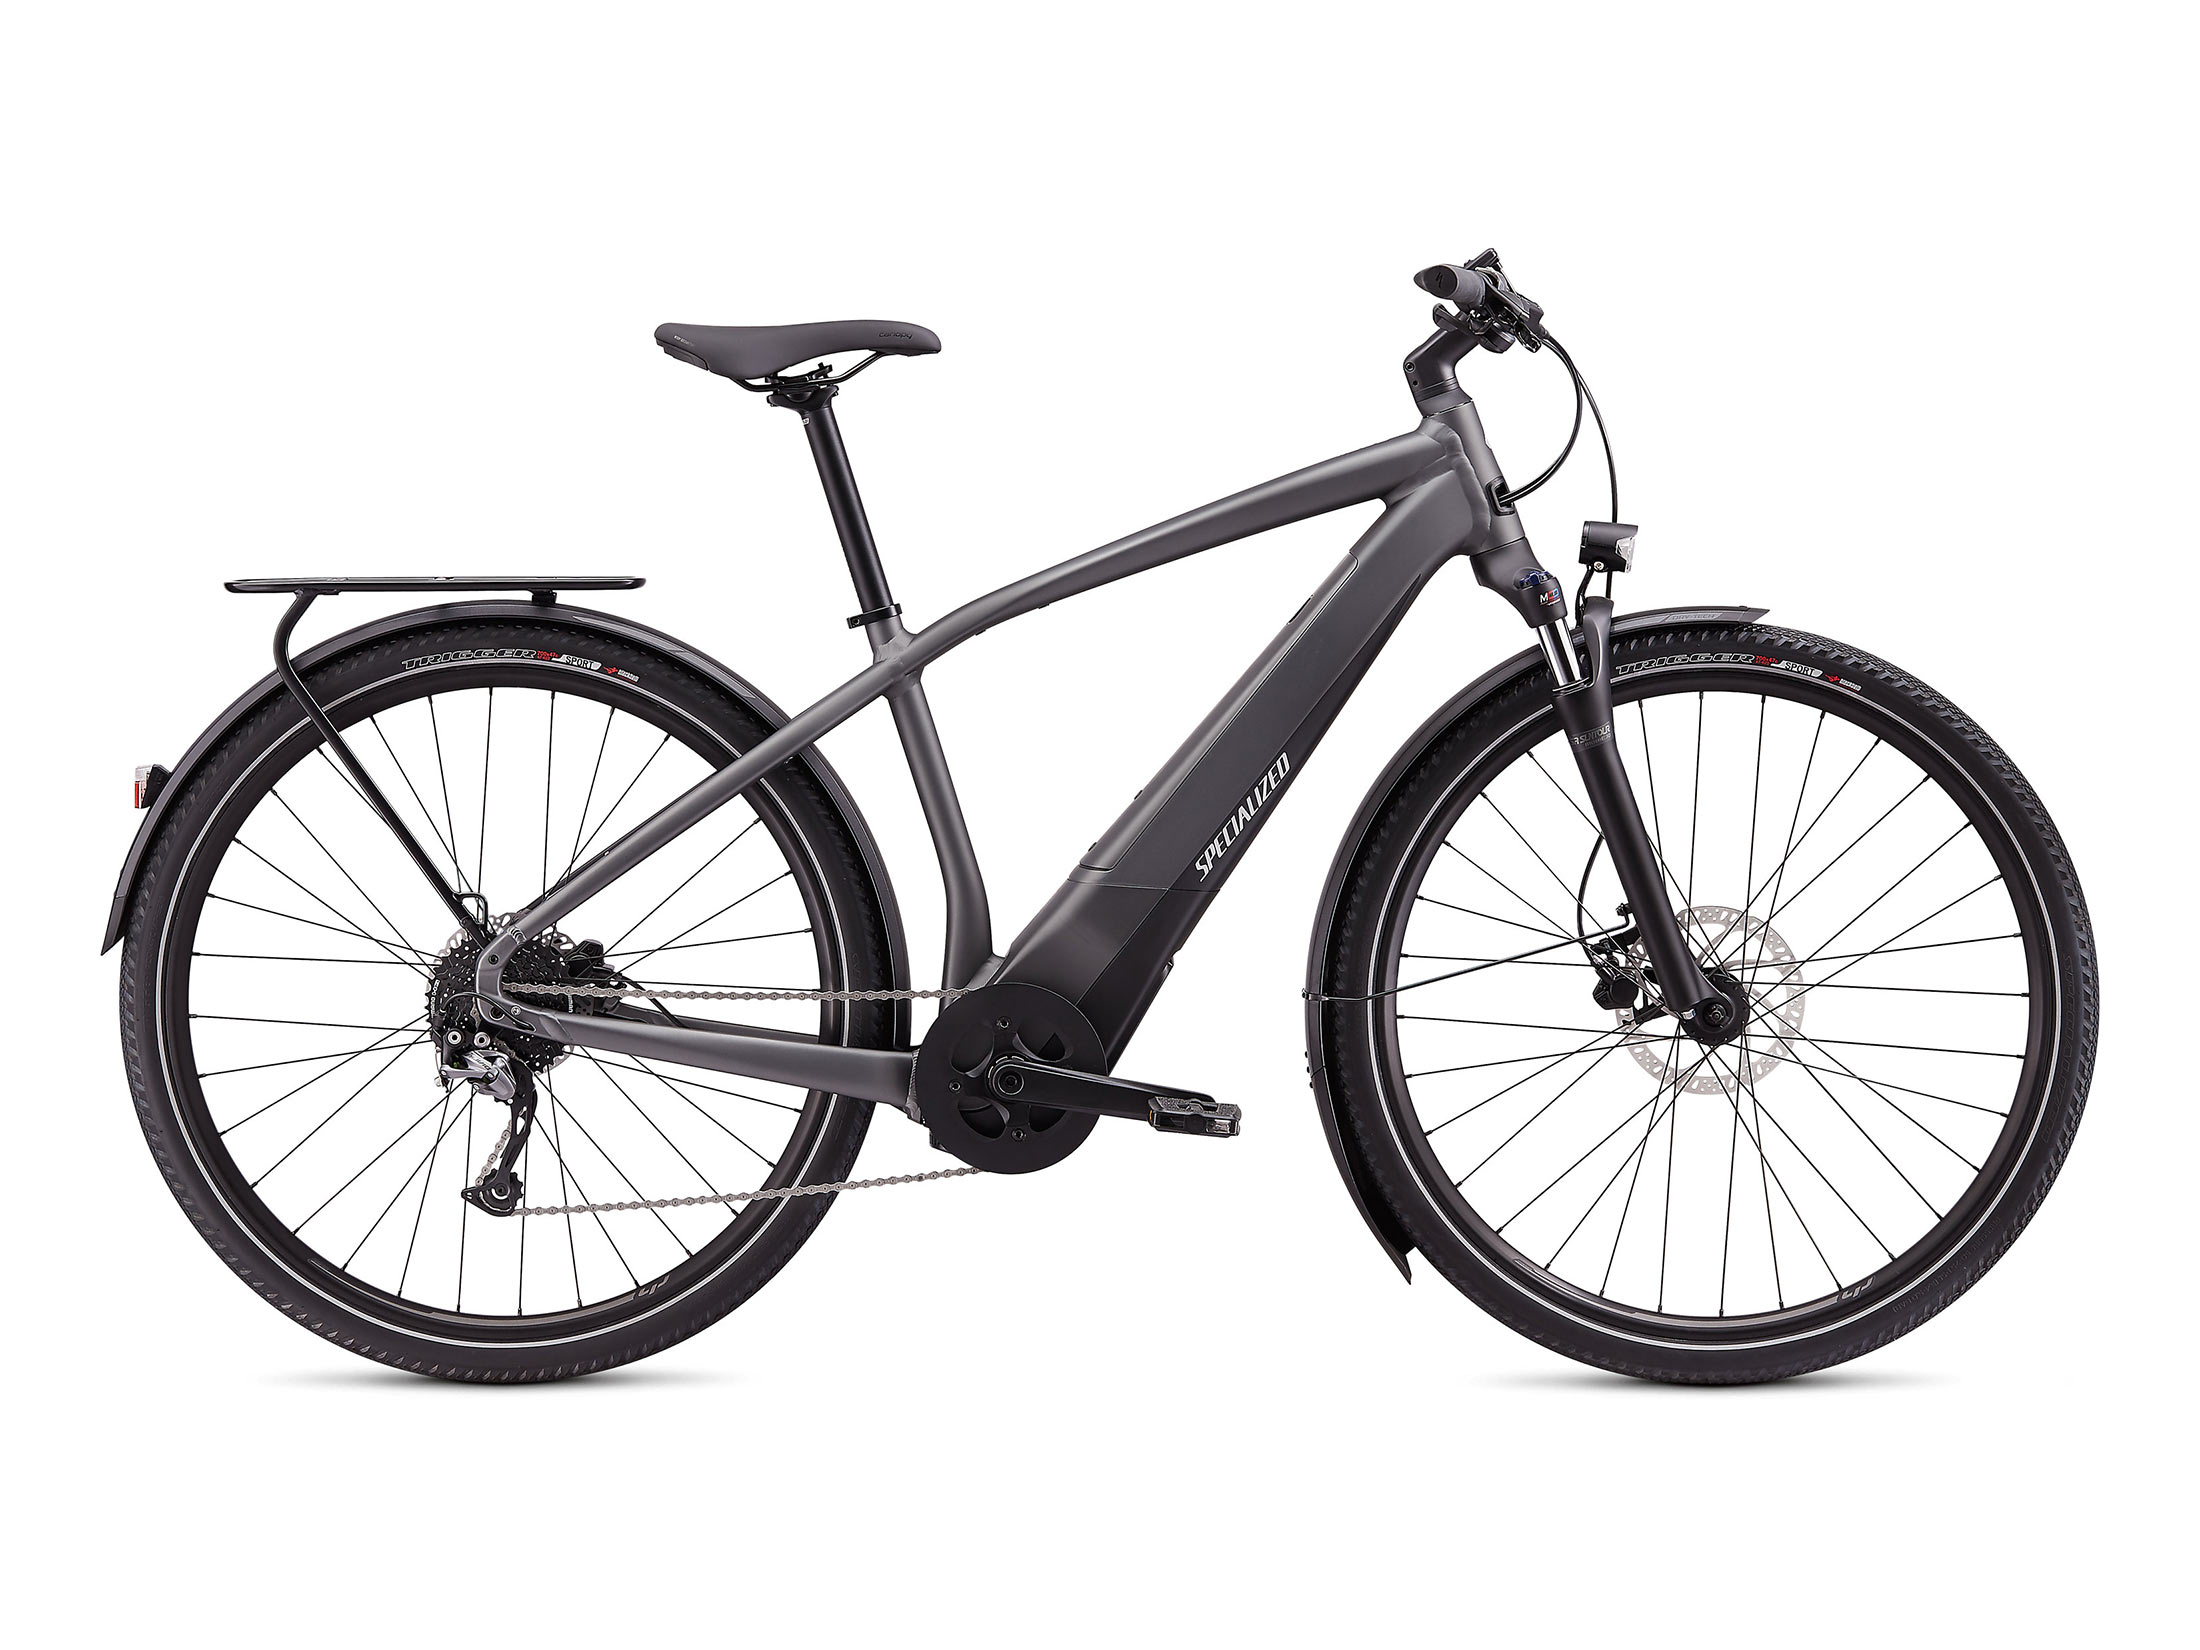 Ηλεκτρικό Ποδήλατο Specialized Turbo Vado 3.0 - Charcoal / Black / Liquid Silver